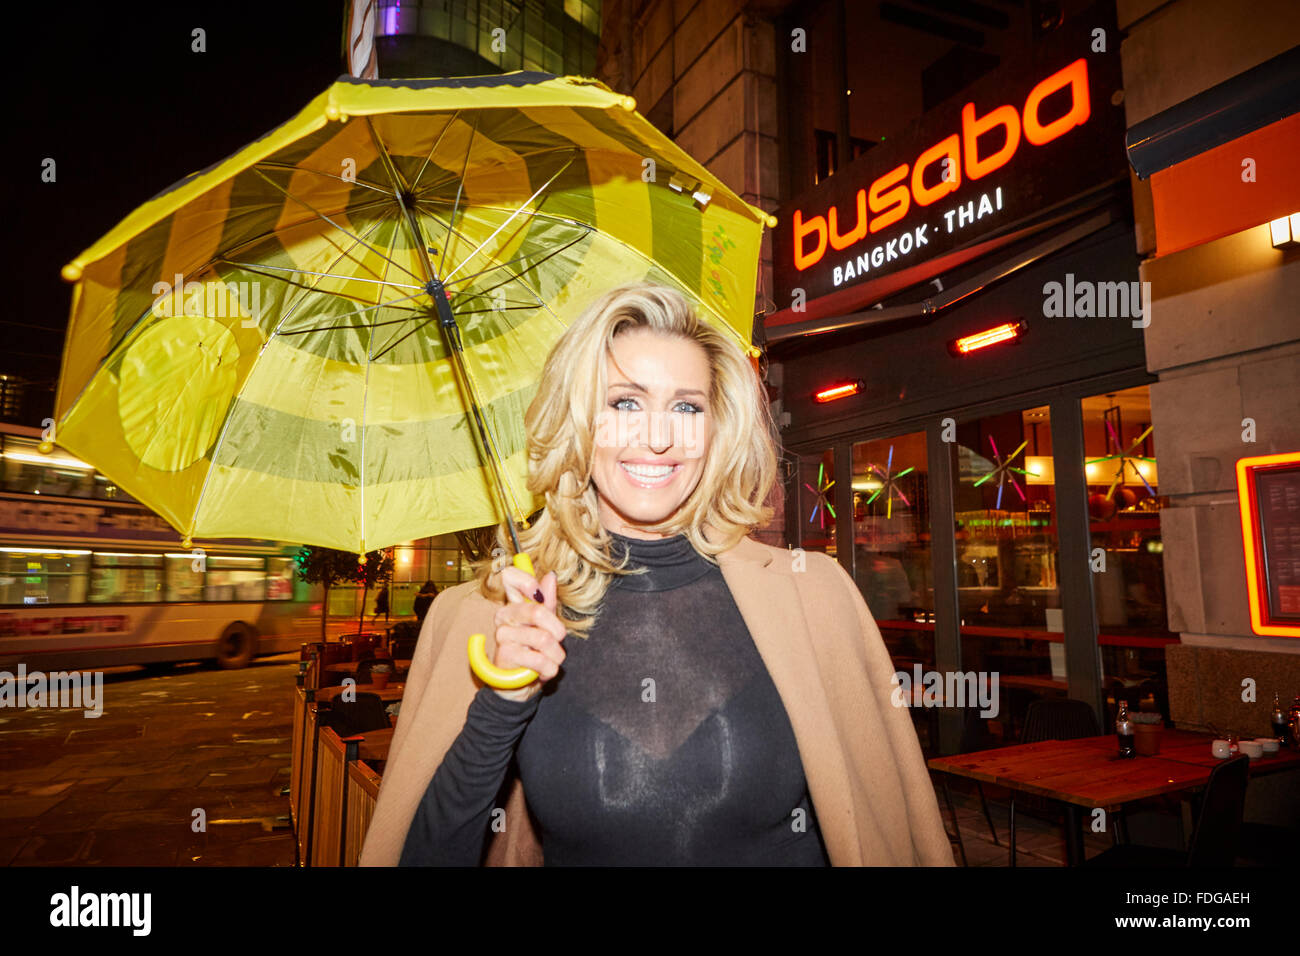 Busaba Thai restaurant opening party at Manchester Printworks   Wes Brown's wife Leanne Brown pretty footballers - Stock Image